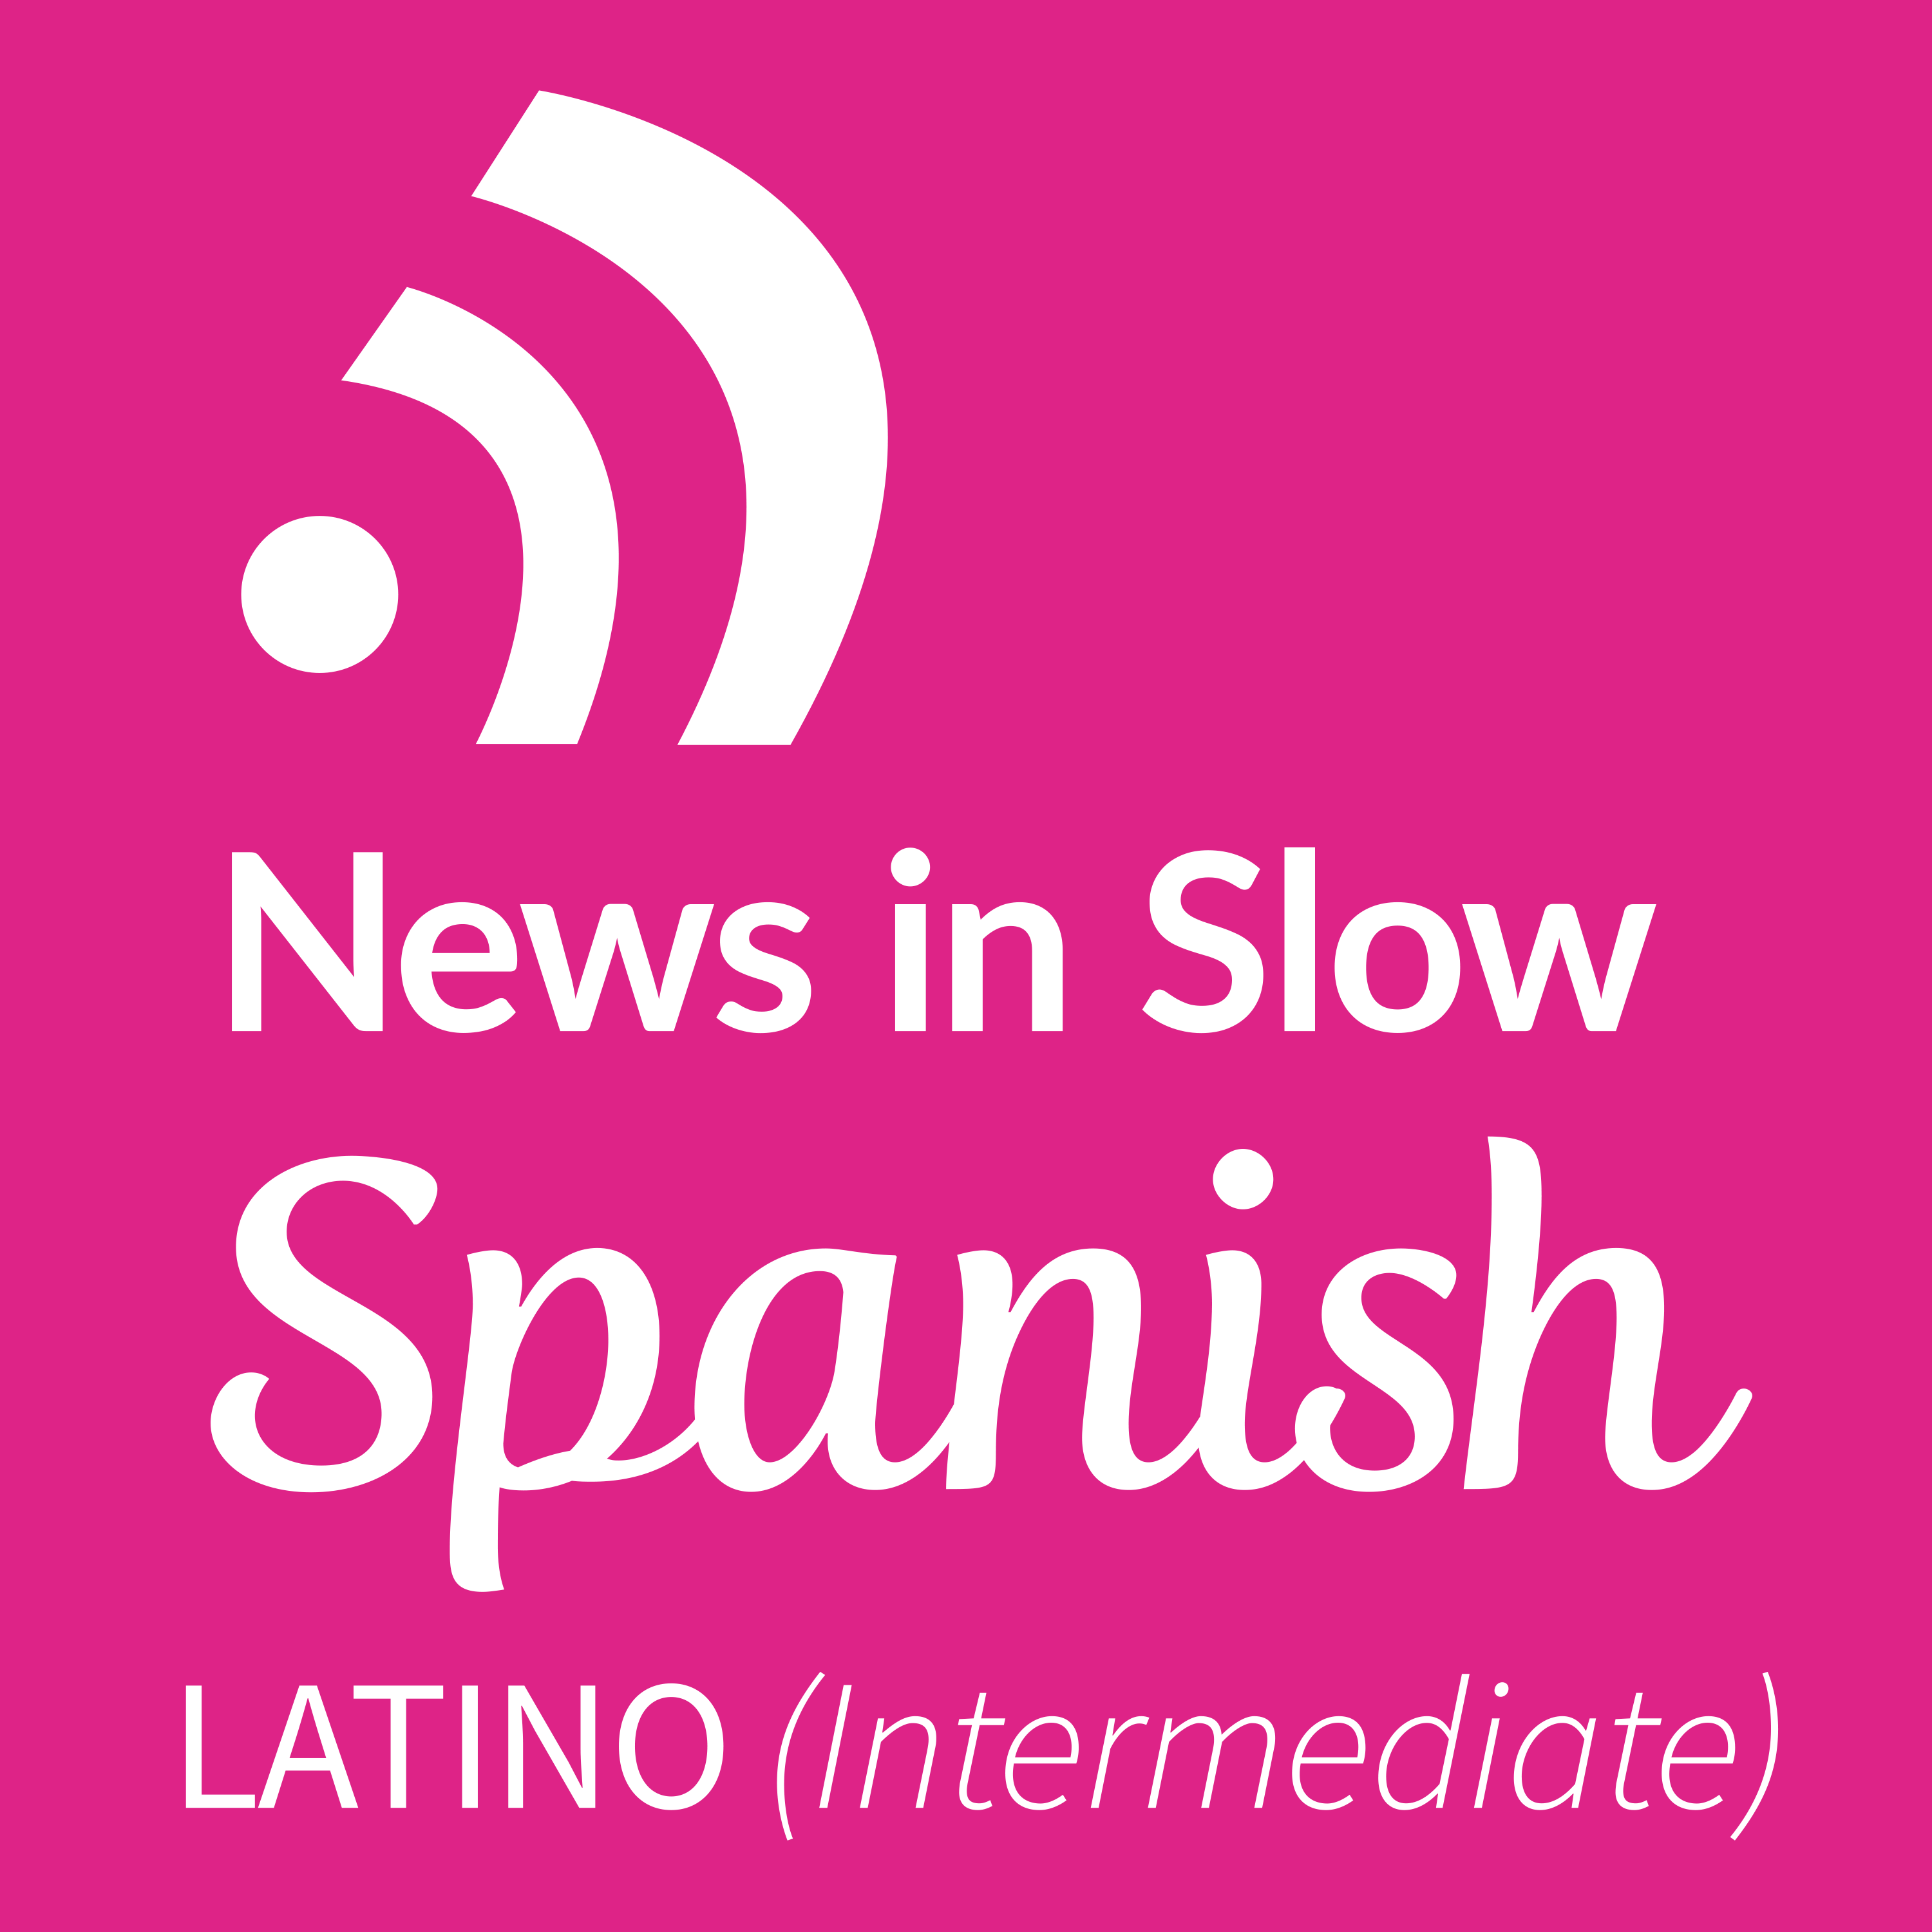 News in Slow Spanish Latino - # 192 - Spanish news, grammar and idiomatic expressions